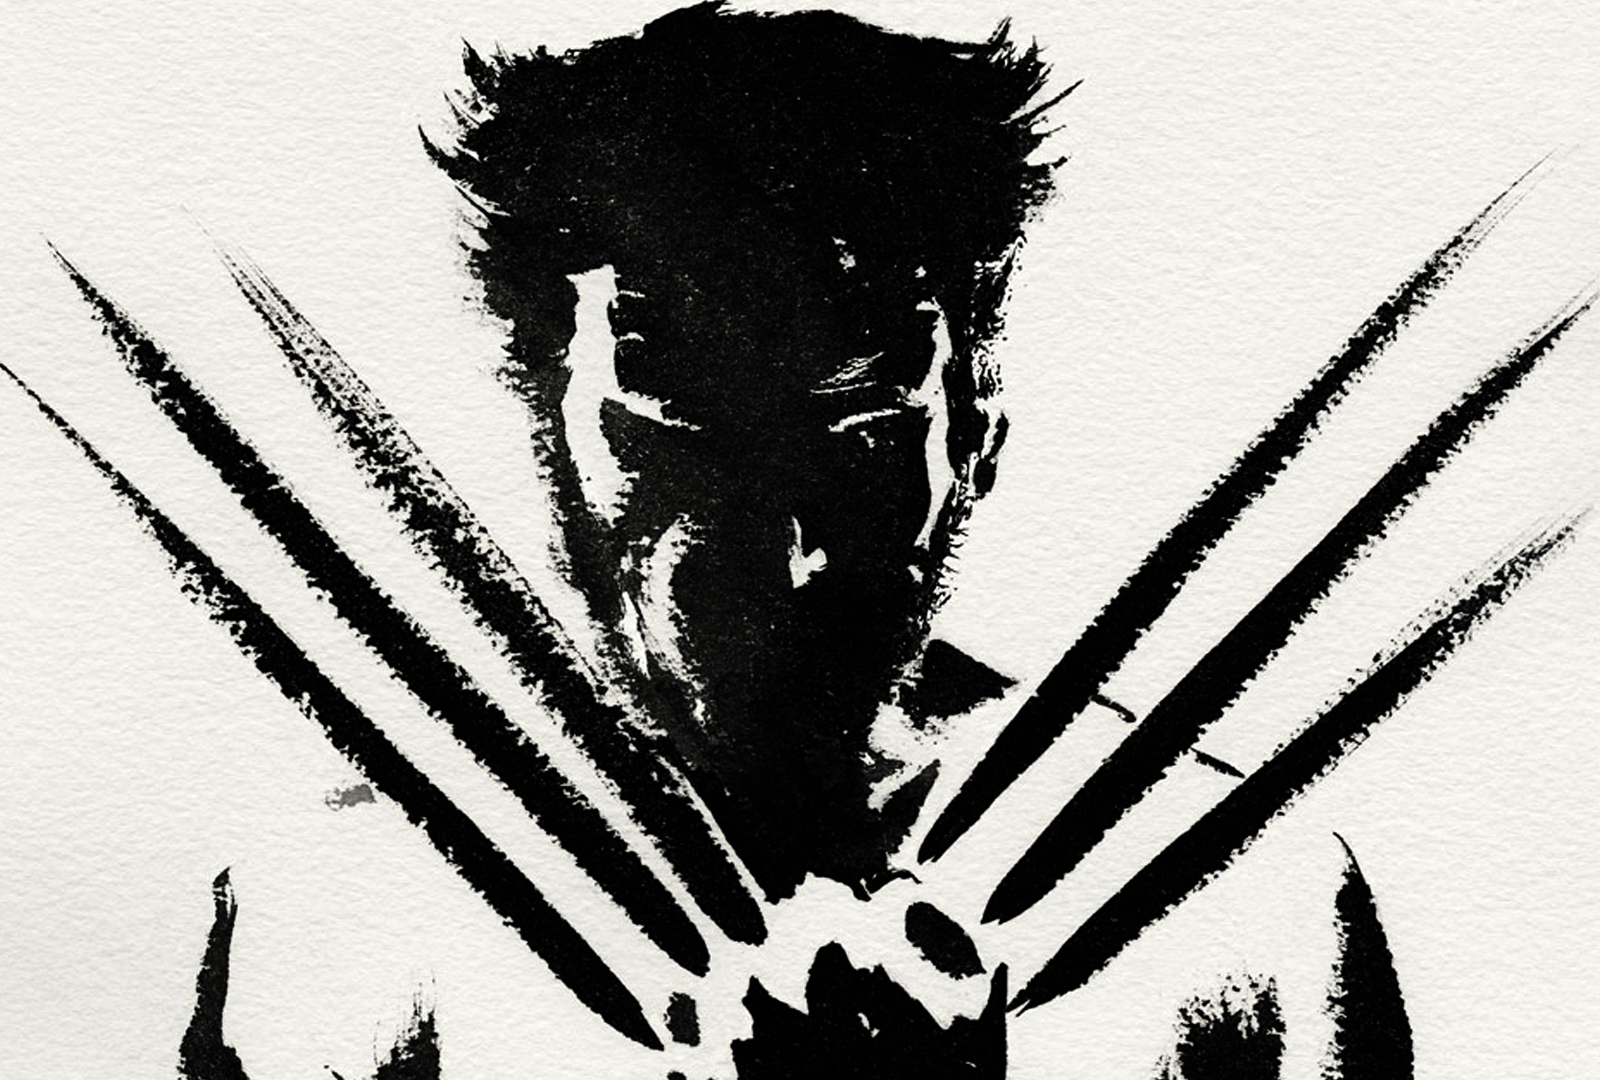 The-Wolverine-Movie-Poster-HD-desktop-High-wallpaper-wpc9009902